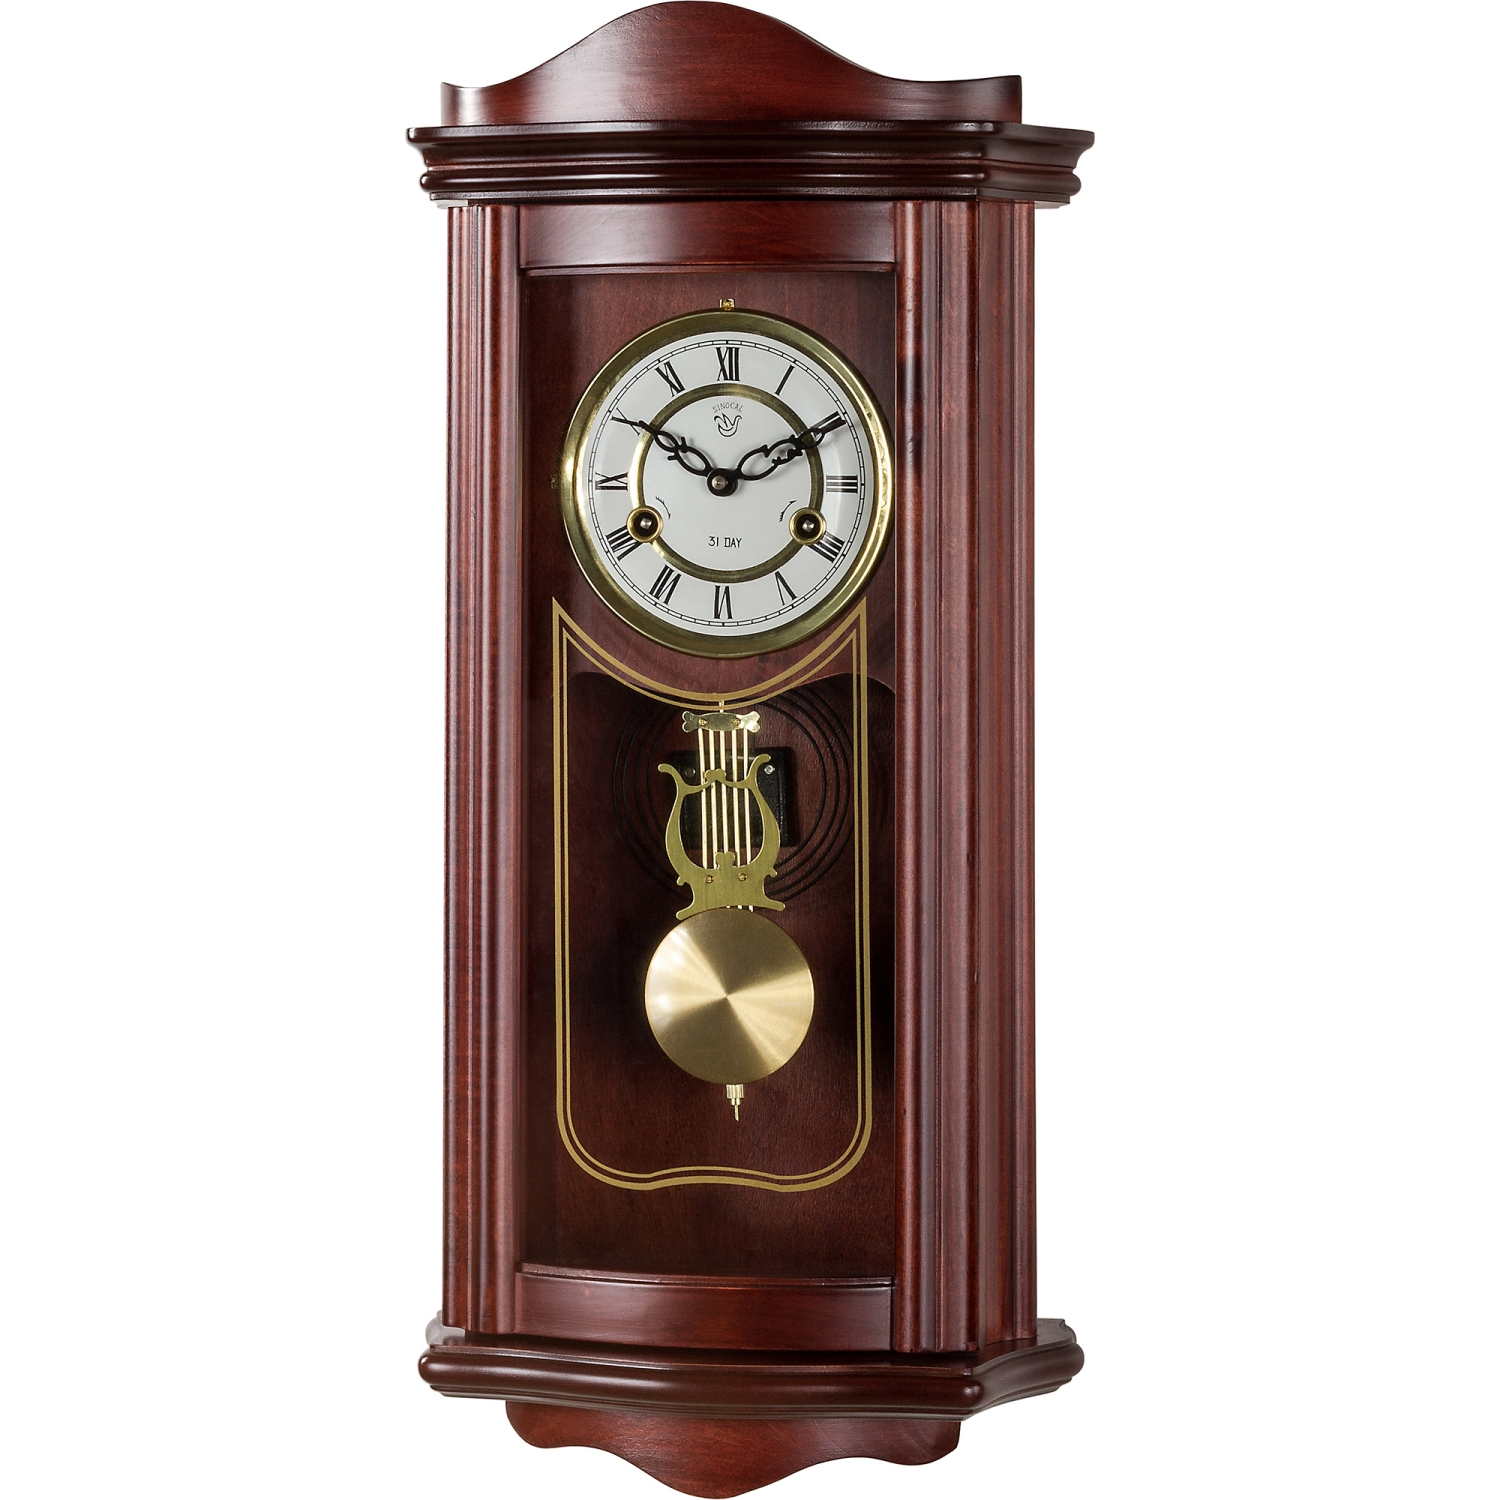 Wall clock prometheus regulator pendulum clock mahagoni ebay - Stylish pendulum wall clock ...